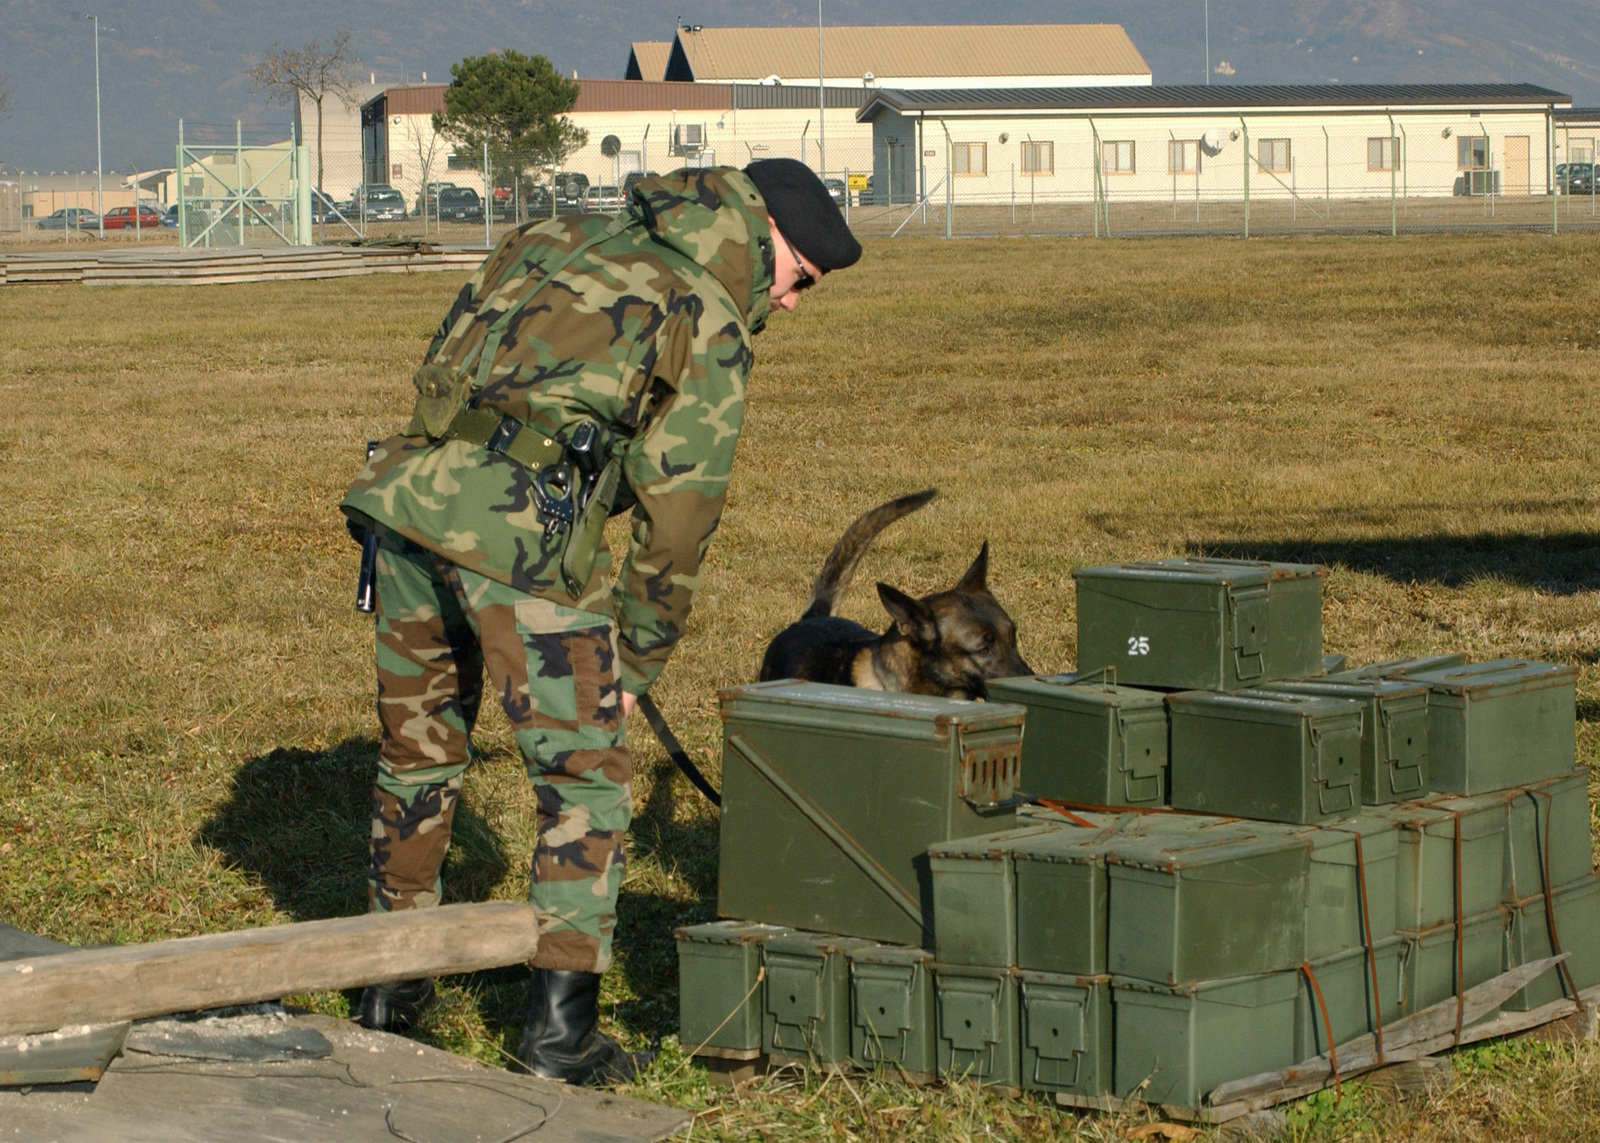 STAFF Sergeant (SSGT) Dominic Vecchi, USAF, dog handler, 31st Security Forces Squadron (SFS), Aviano AB, Italy, guides his K-9, Lakya, a Belgian Malamois, through its paces, detecting for a possible bomb in this stack of ammo cases. The working dog team at Aviano undergoes weekly training for bomb detection and attack procedures